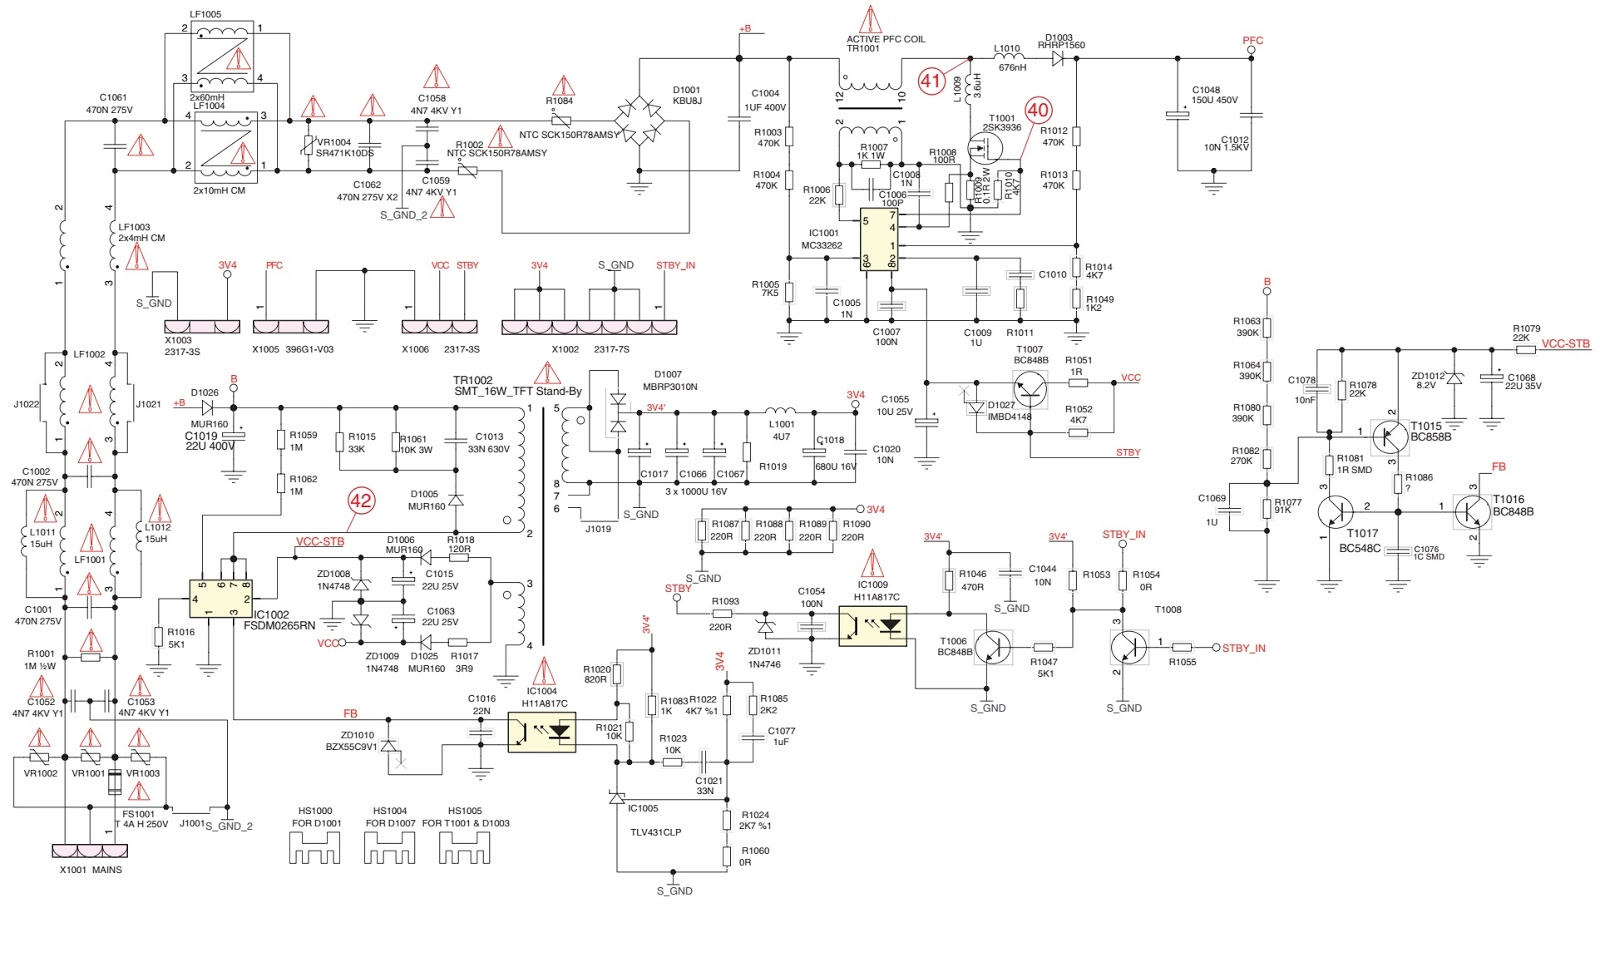 small resolution of grundig lcd tv smps schematics circuit diagrams electronic besides live sound system setup diagram on tv schematic block diagram